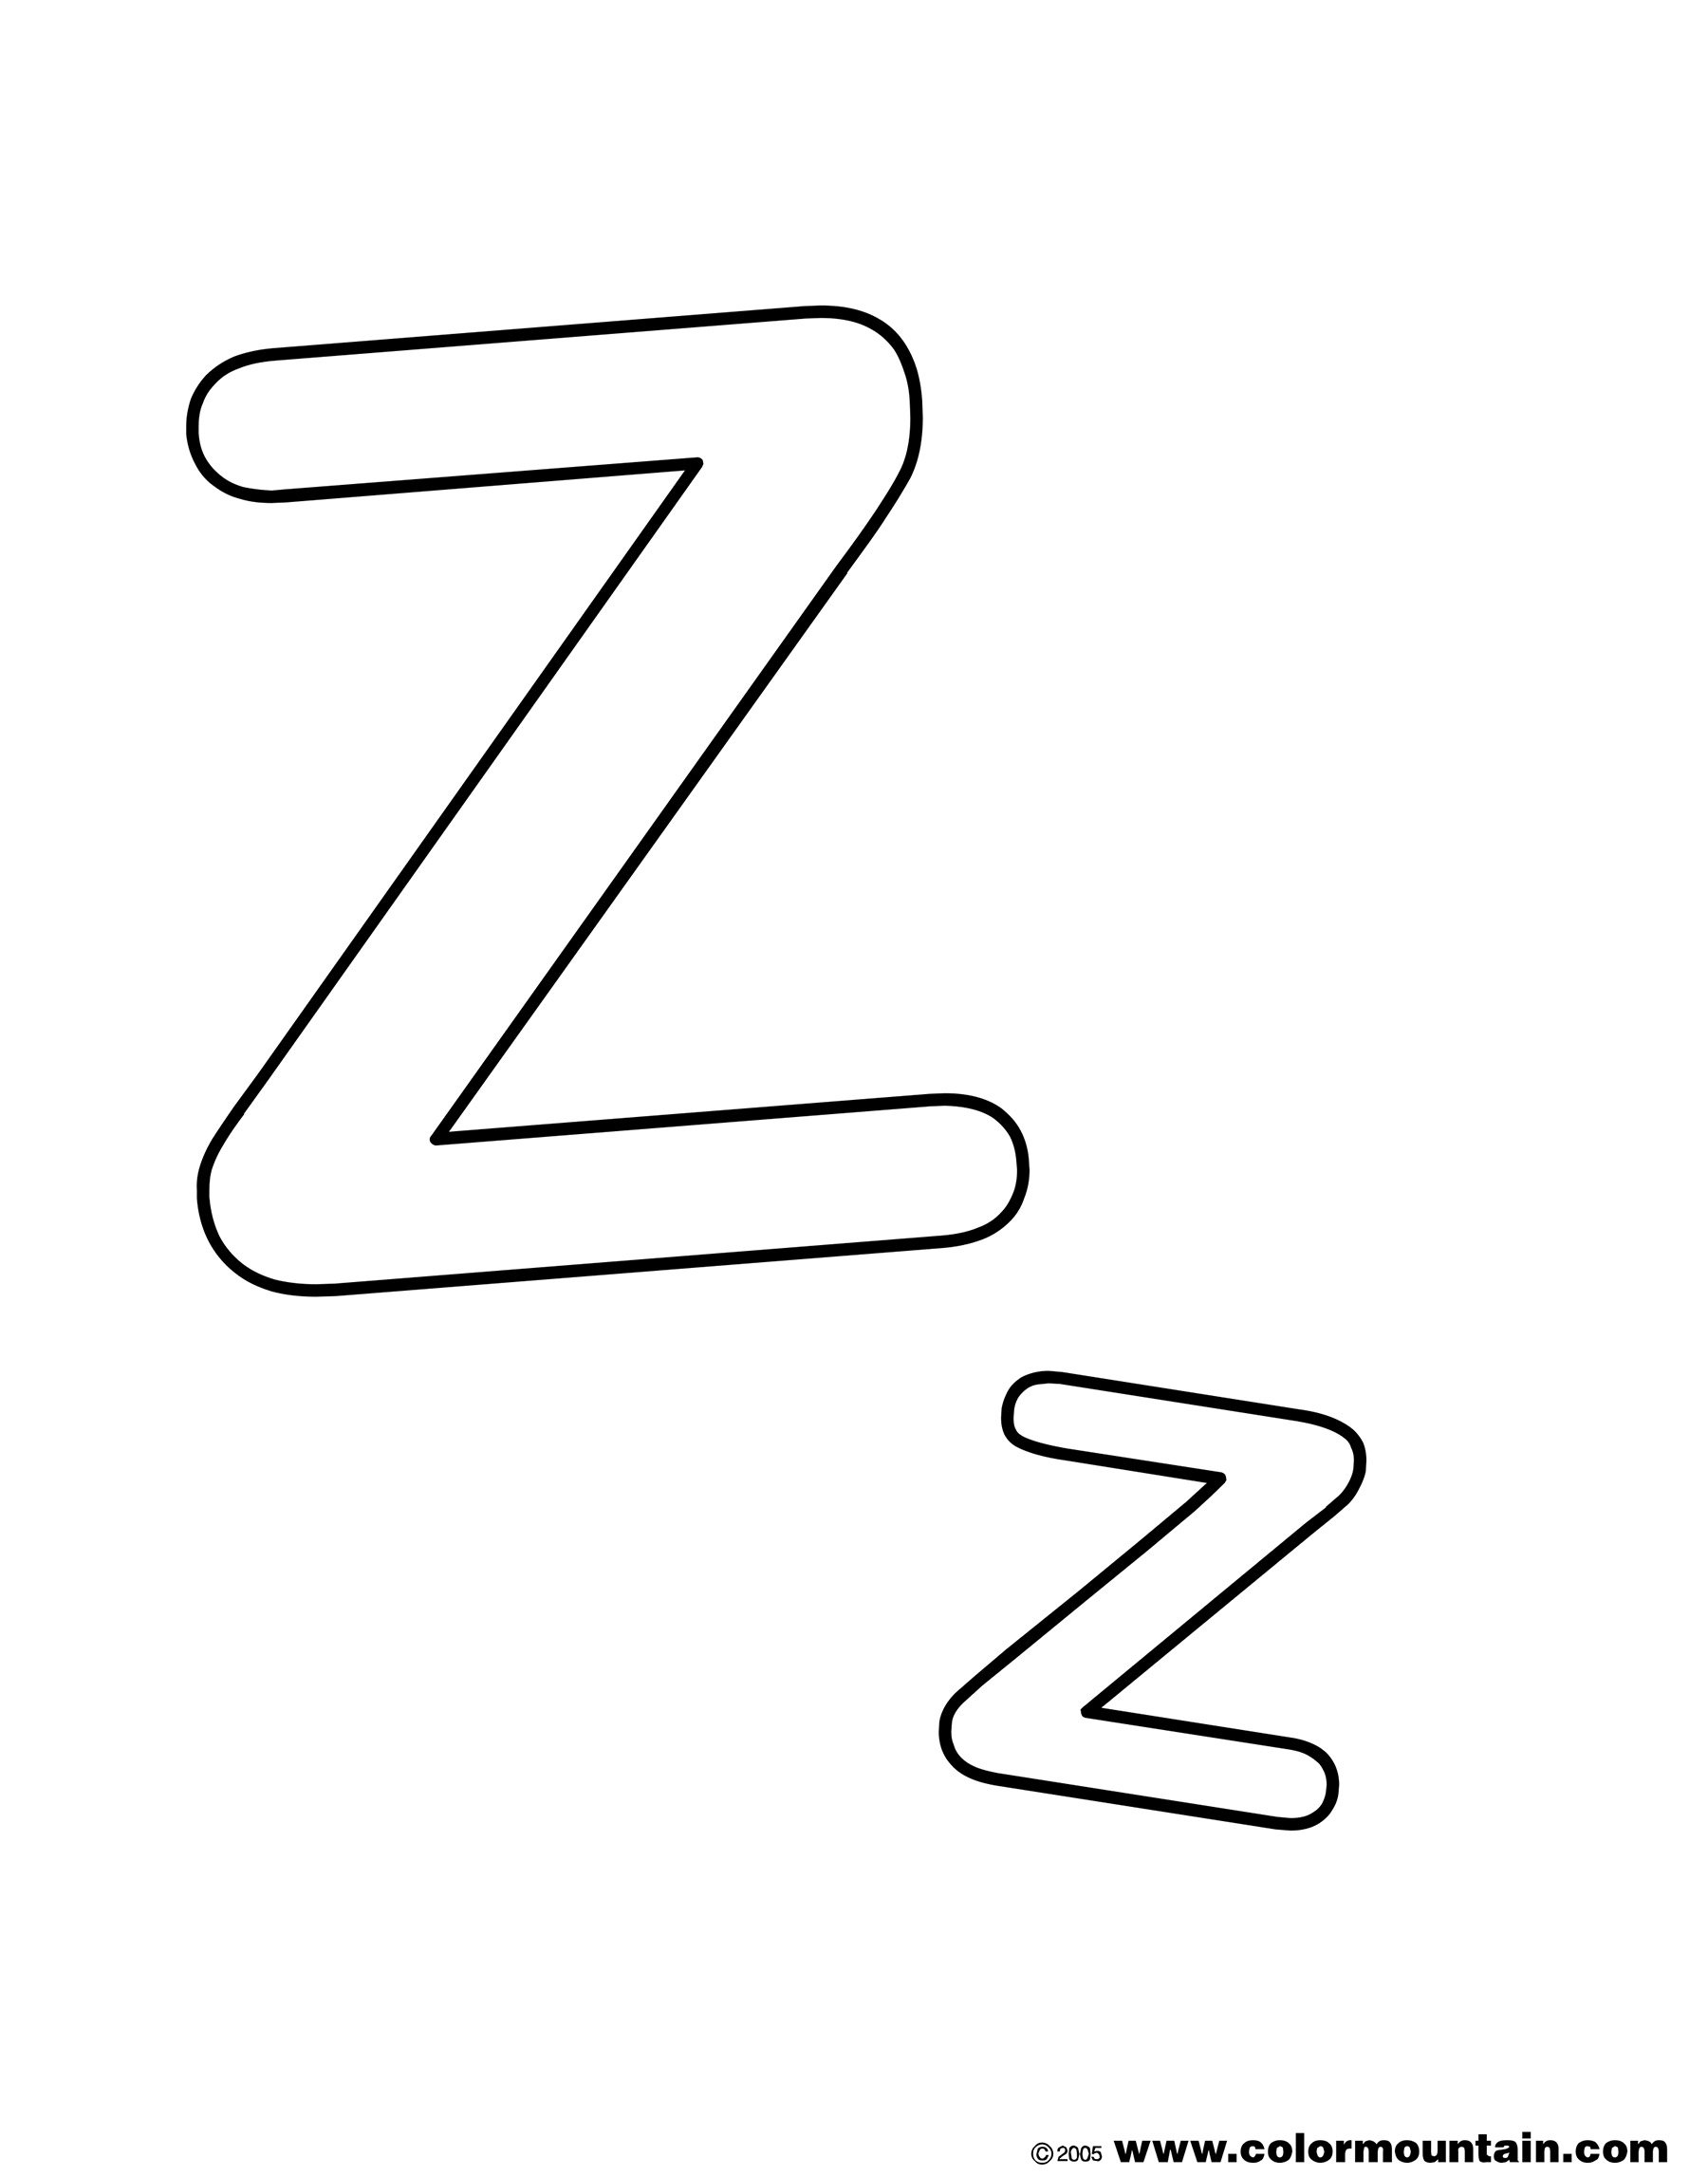 letter z coloring page letter z with animals coloring page free printable page letter z coloring